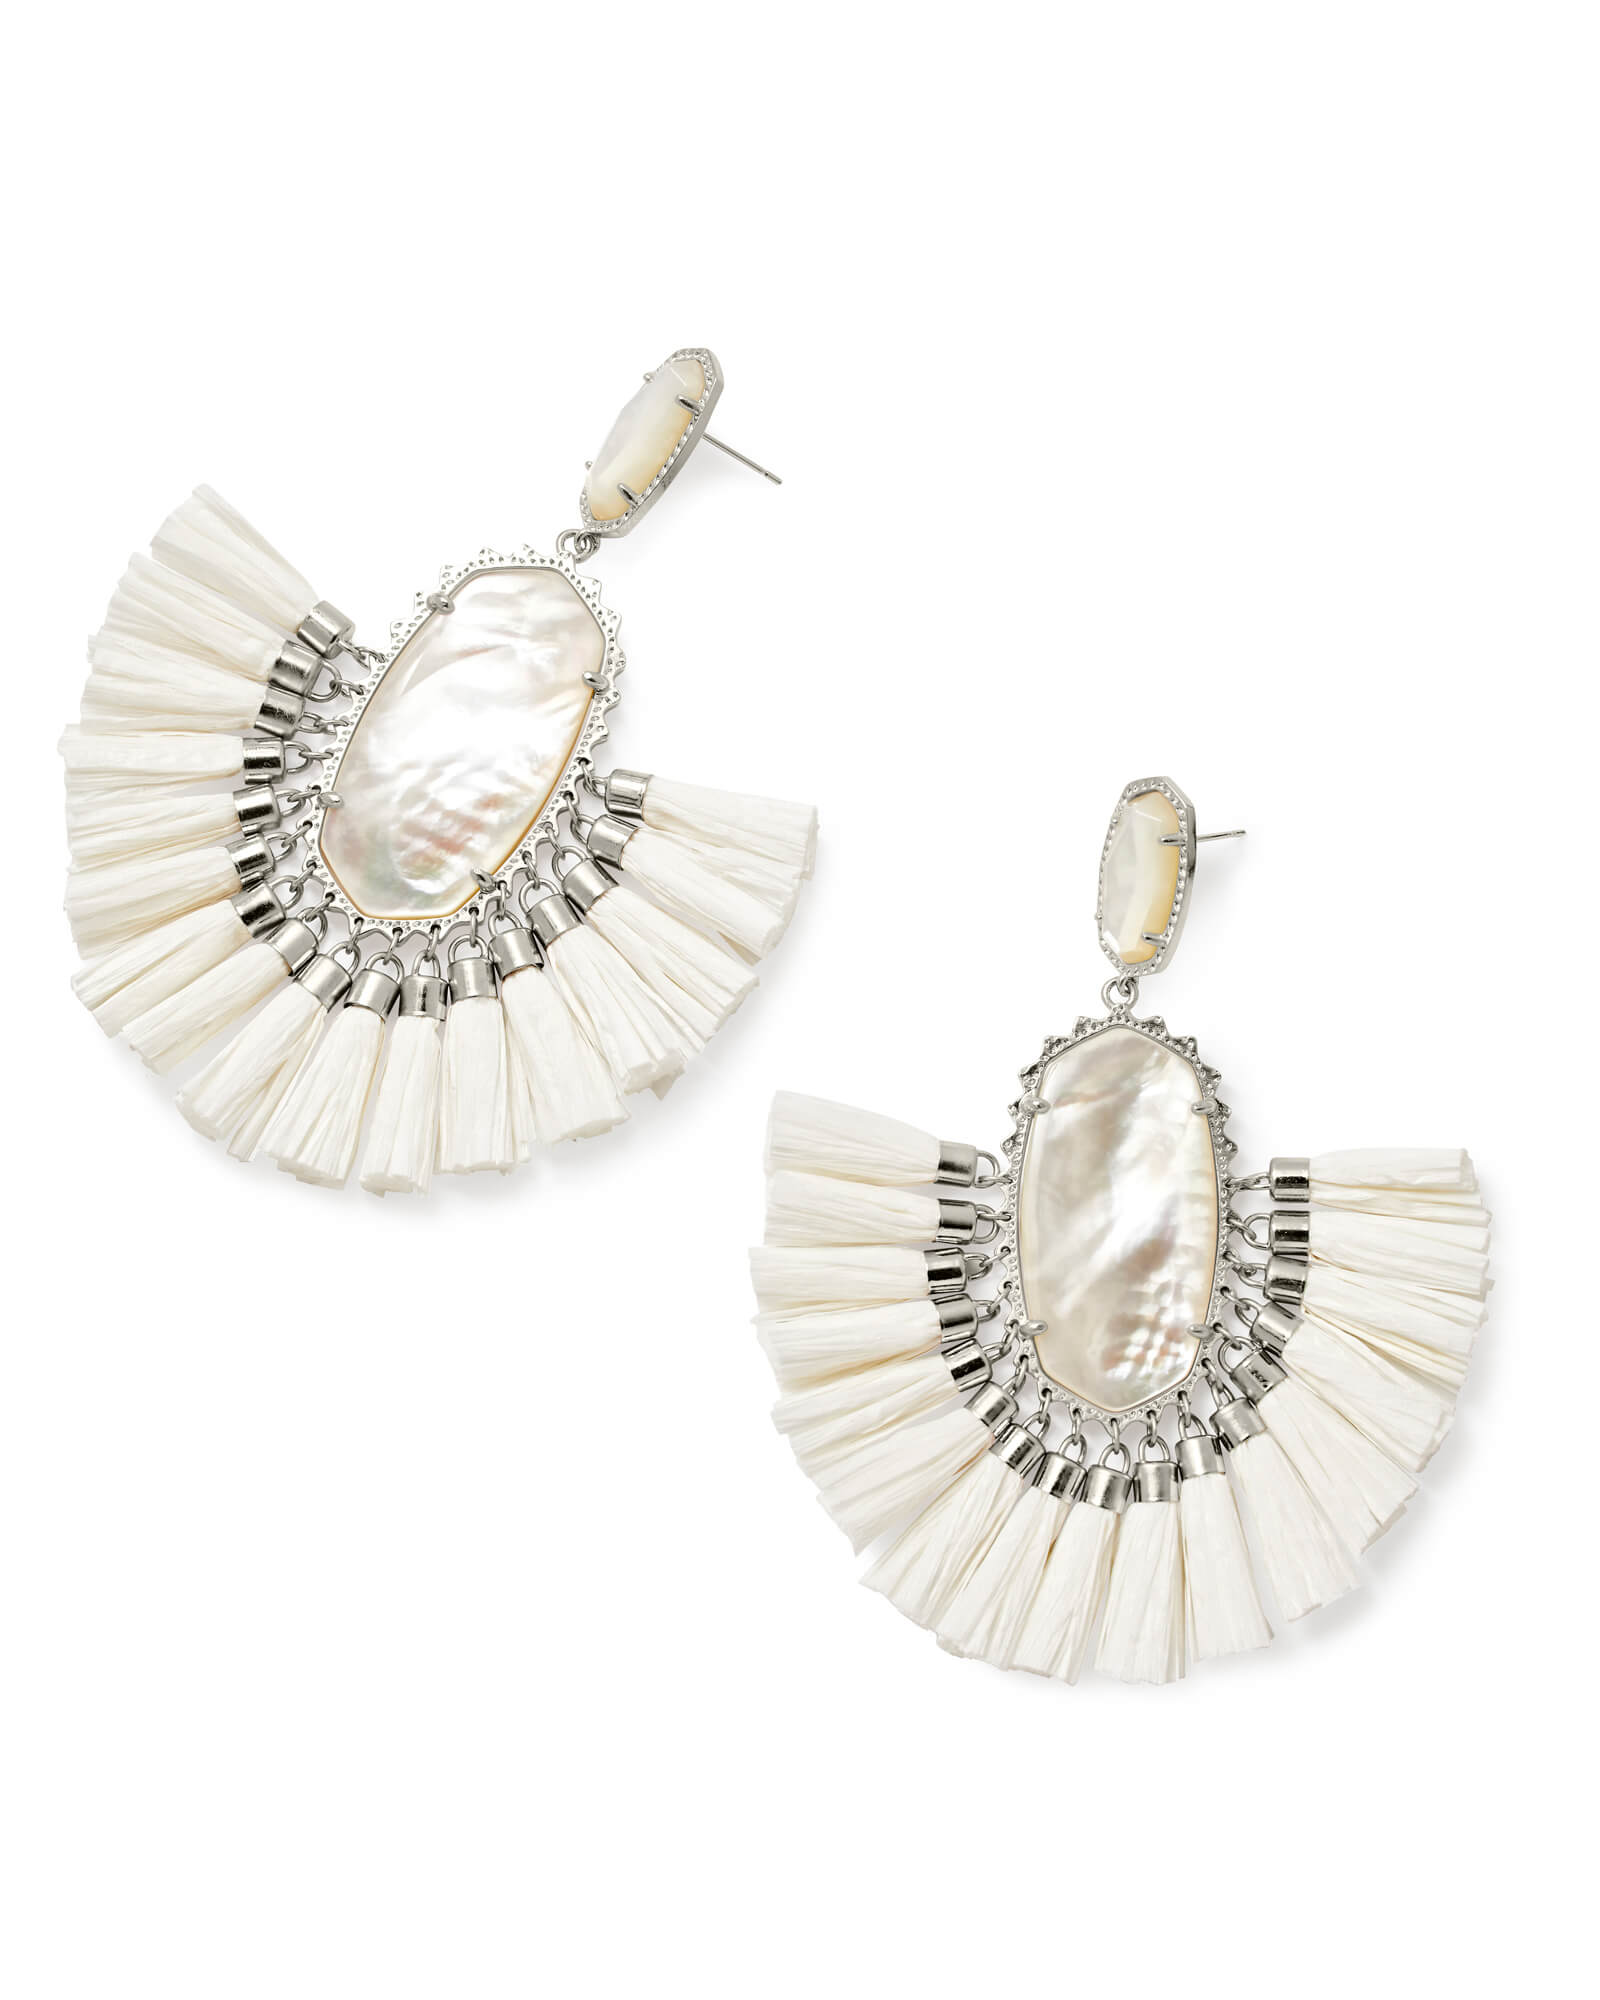 Cristina Silver Statement Earrings In Ivory Mother of Pearl